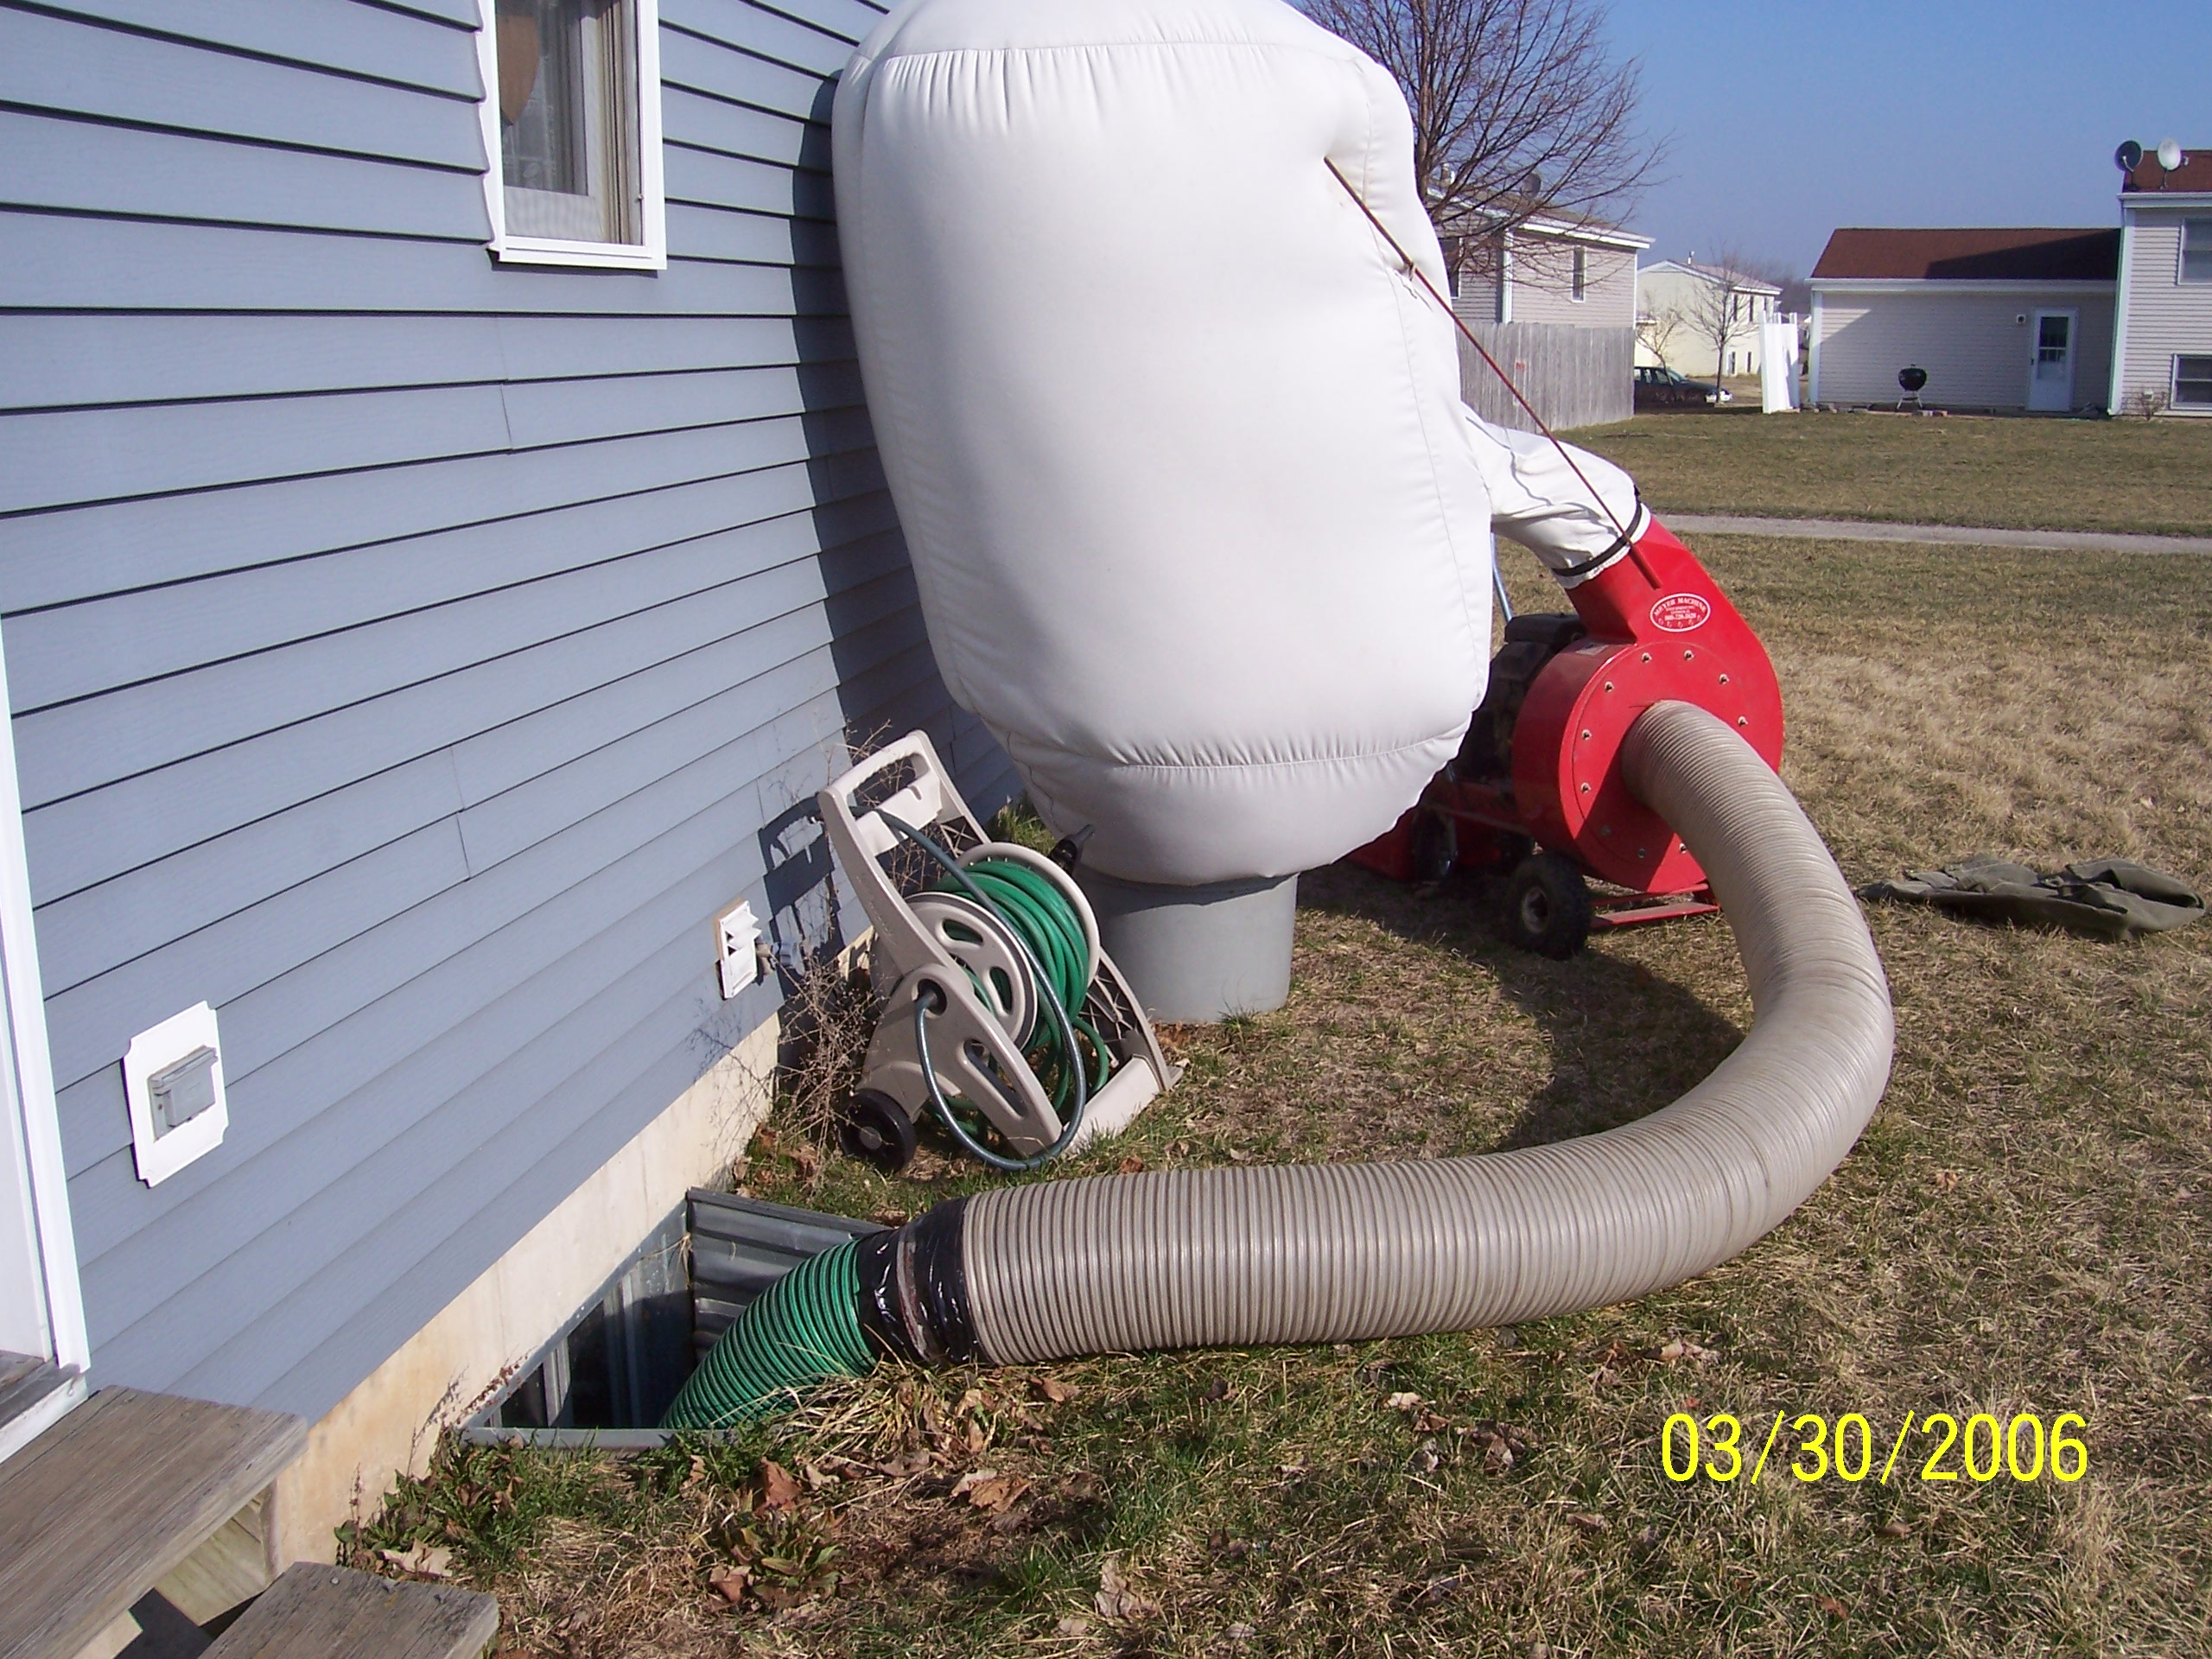 #AC1F2F Pro Power Air Duct Cleaning And Dryer Vent Cleaning In  Brand New 801 Air Duct And Dryer Vent Cleaning images with 2560x1920 px on helpvideos.info - Air Conditioners, Air Coolers and more